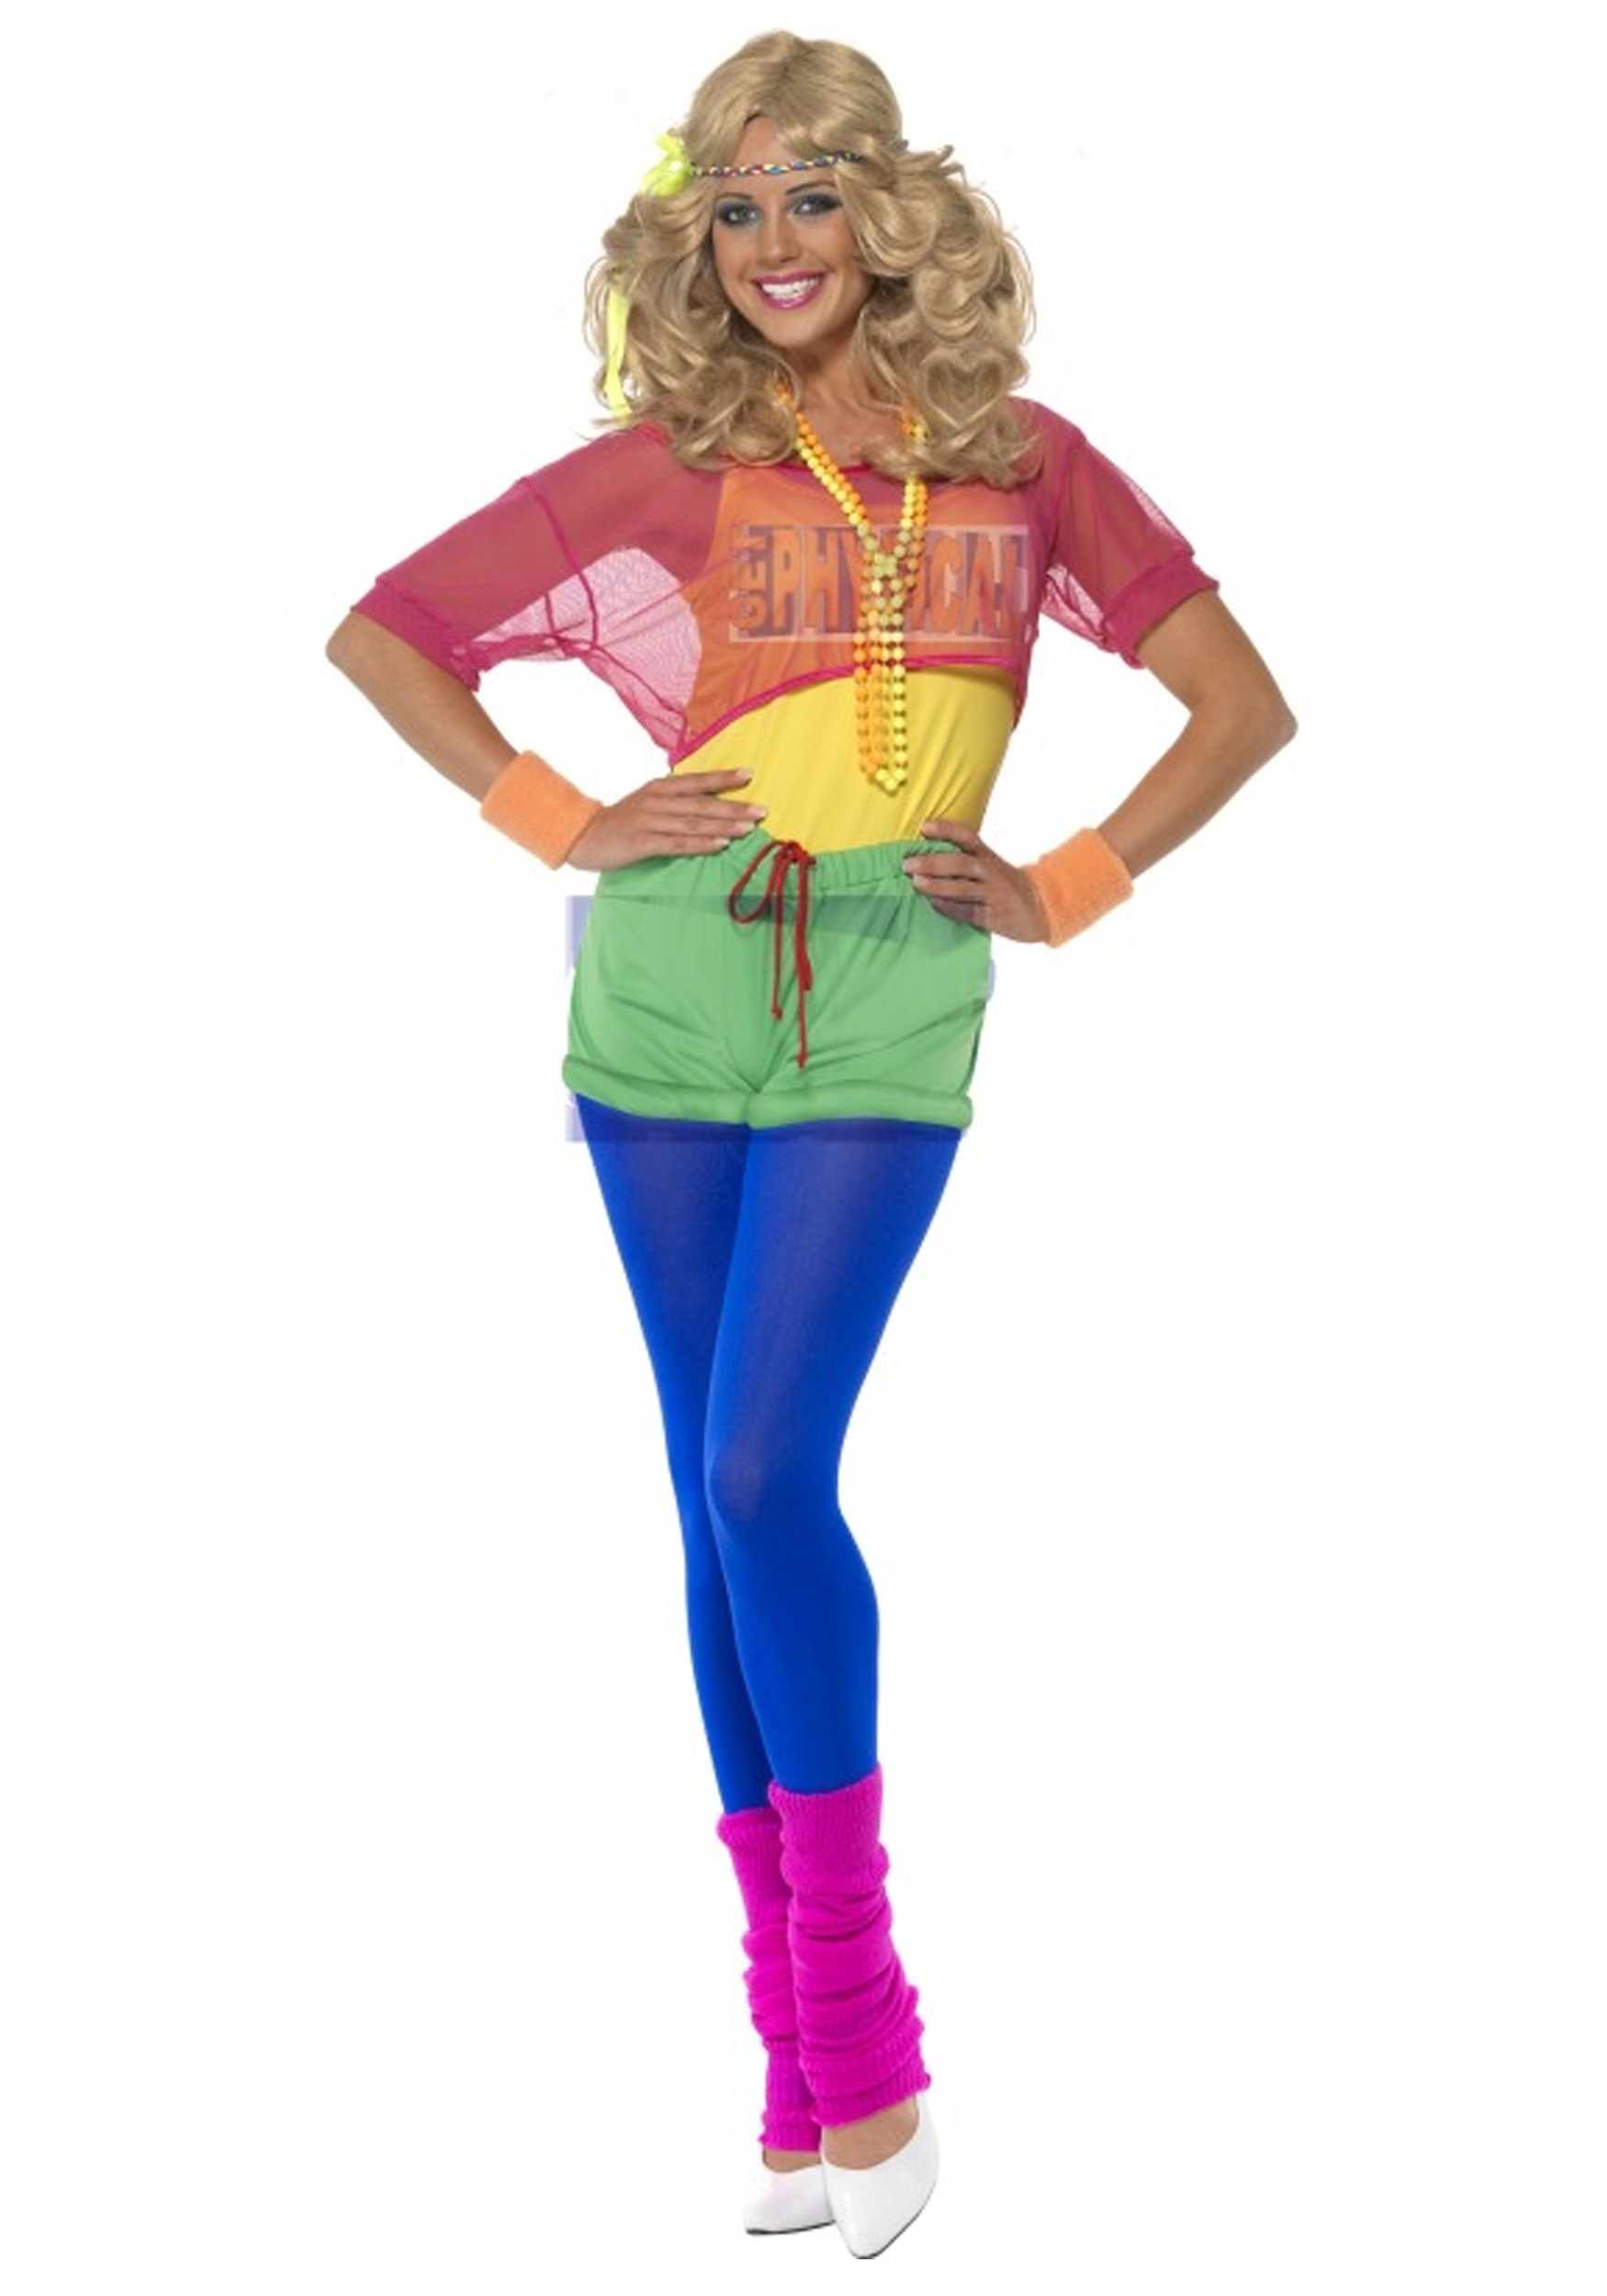 Women's 80s Fashion Ideas s Costume Ideas s Fashion